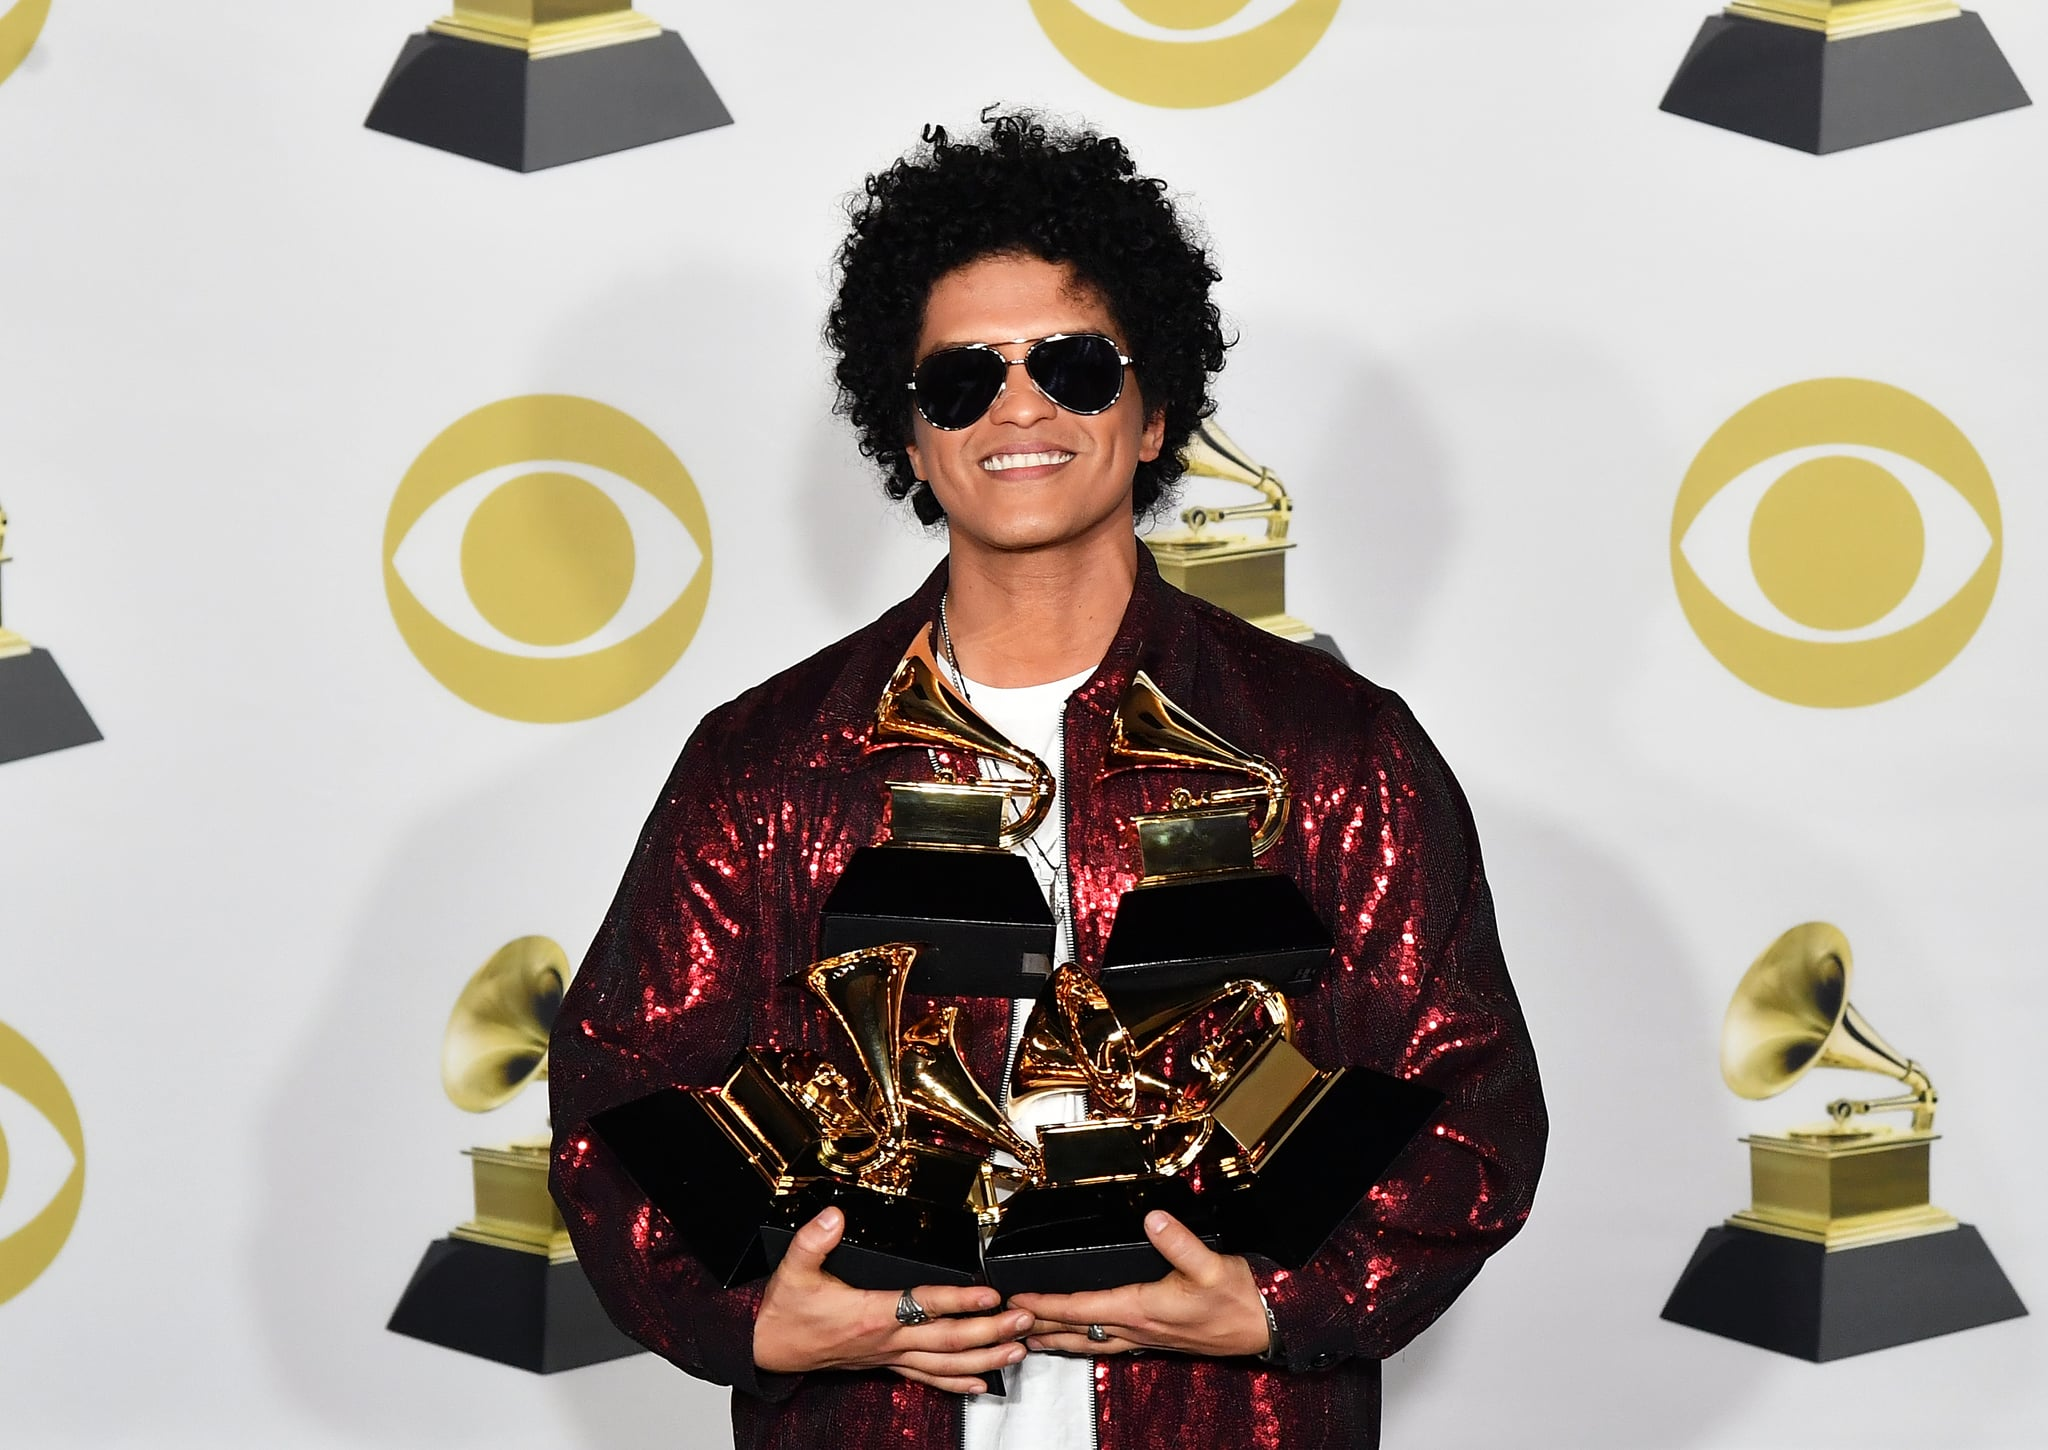 Grammys: How Many Grammys Does Bruno Mars Have?